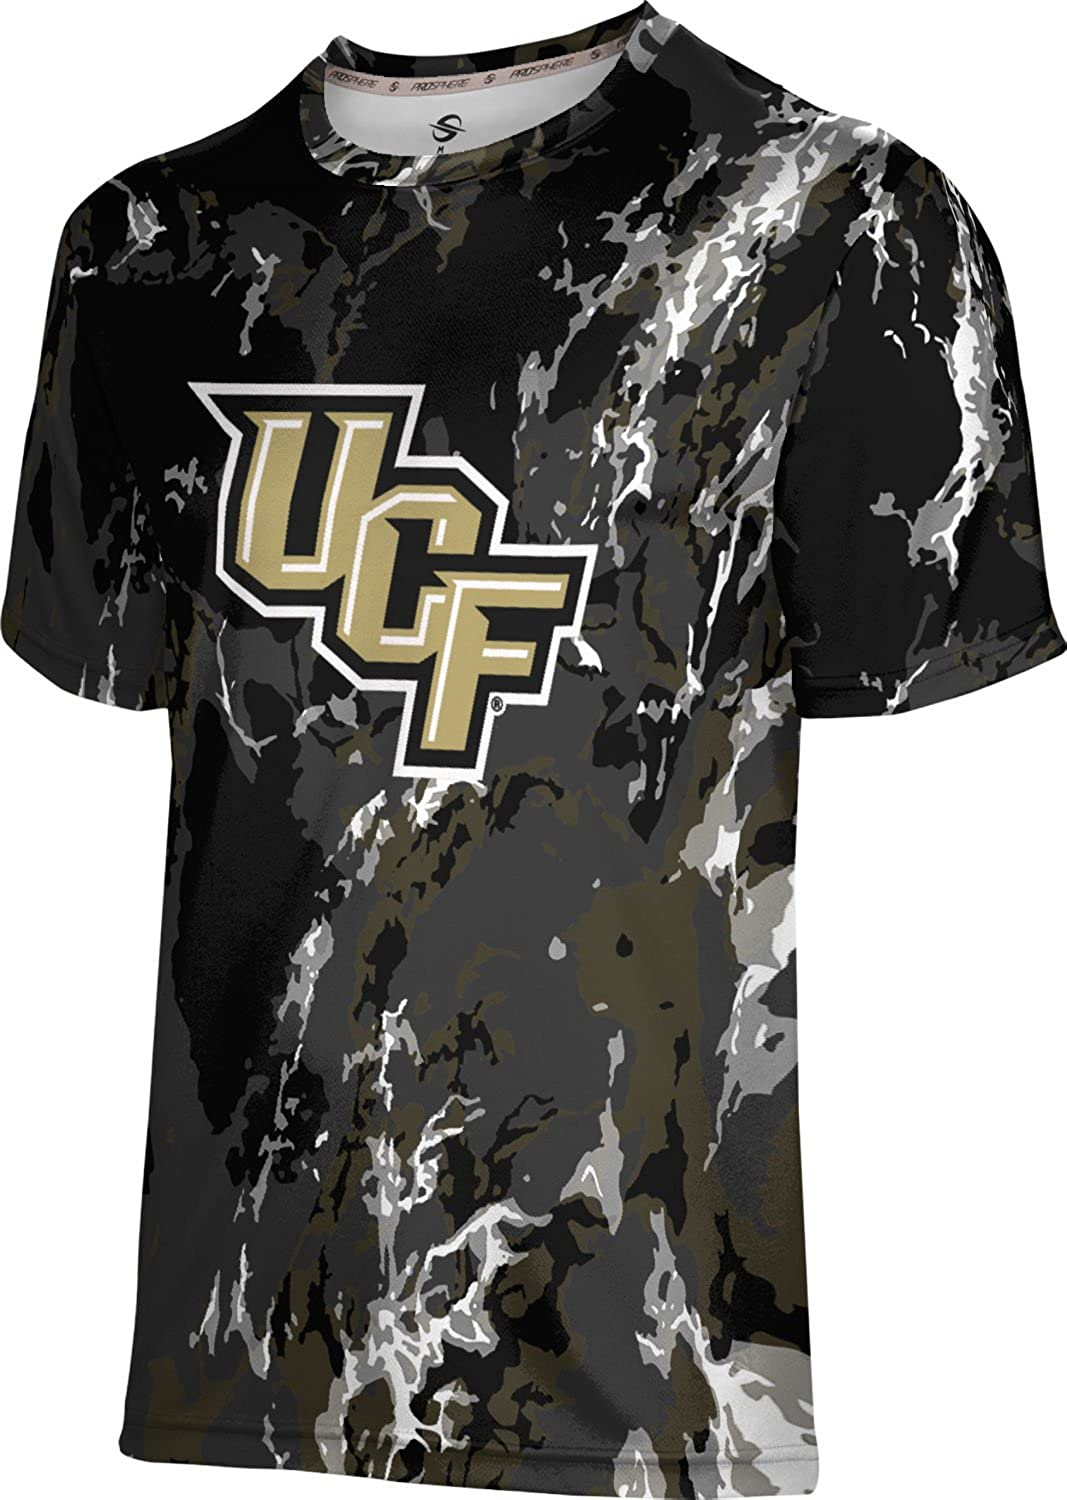 ProSphere University of Central Florida Mens Long Sleeve Tee Topography